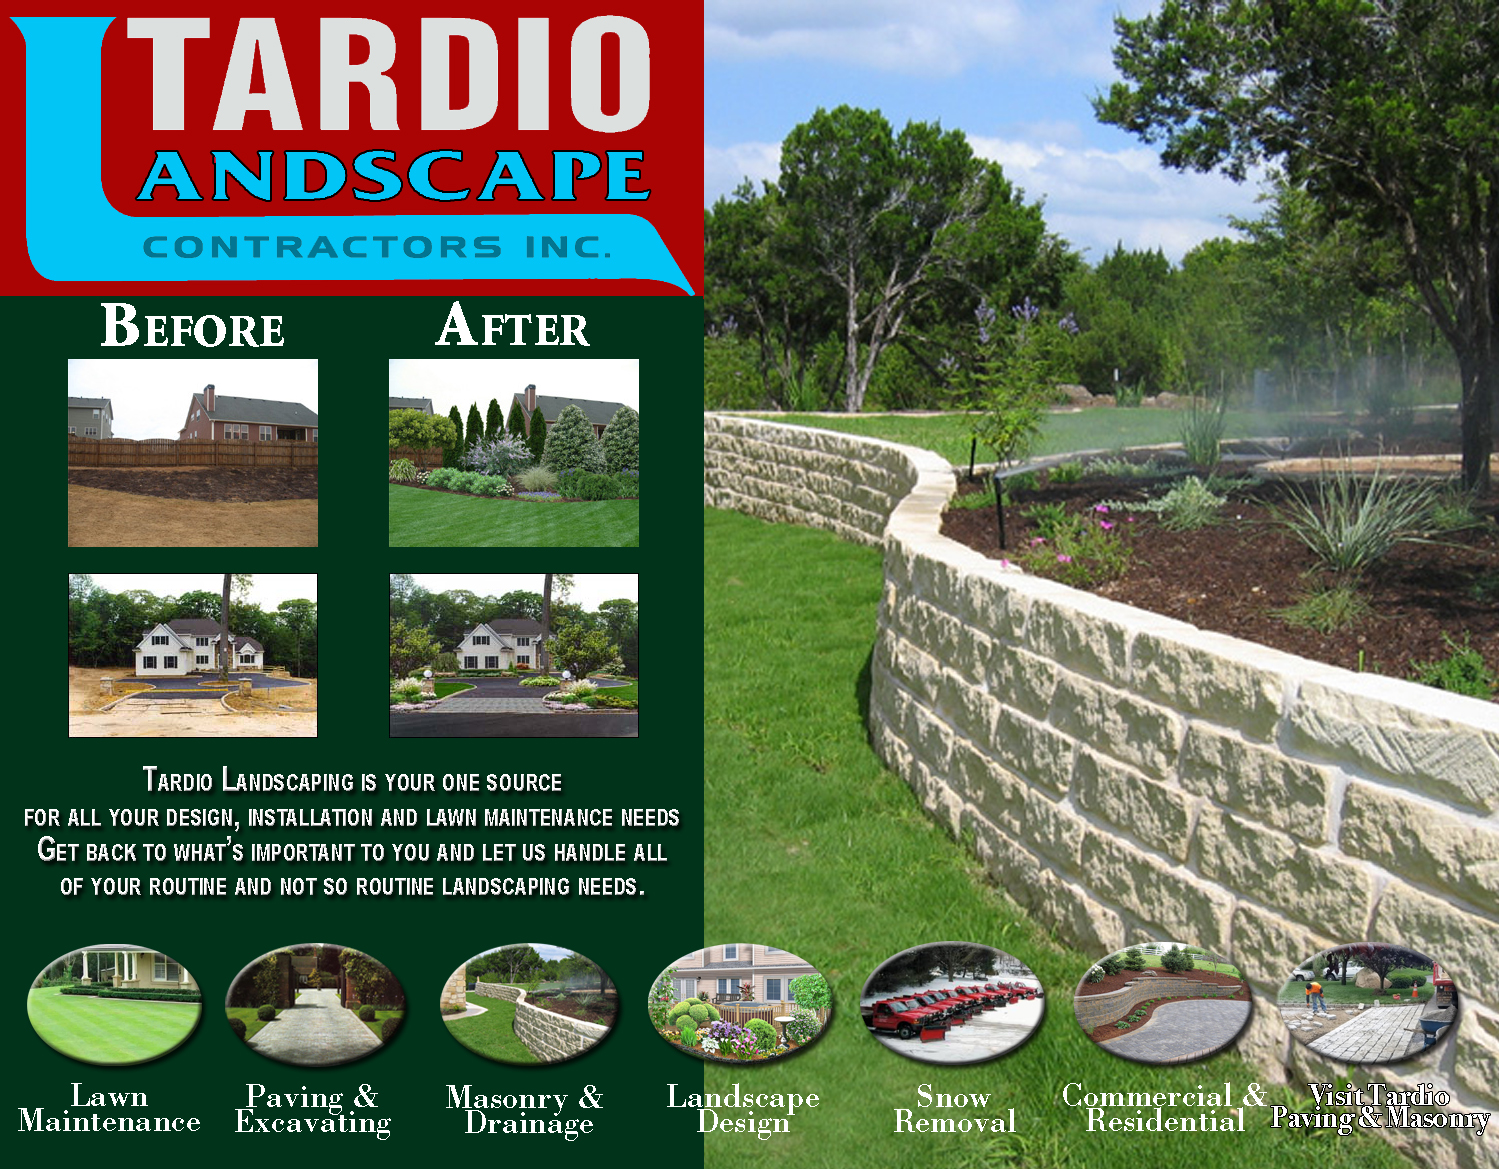 Tardio Paving: Top commercial residential driveway paving